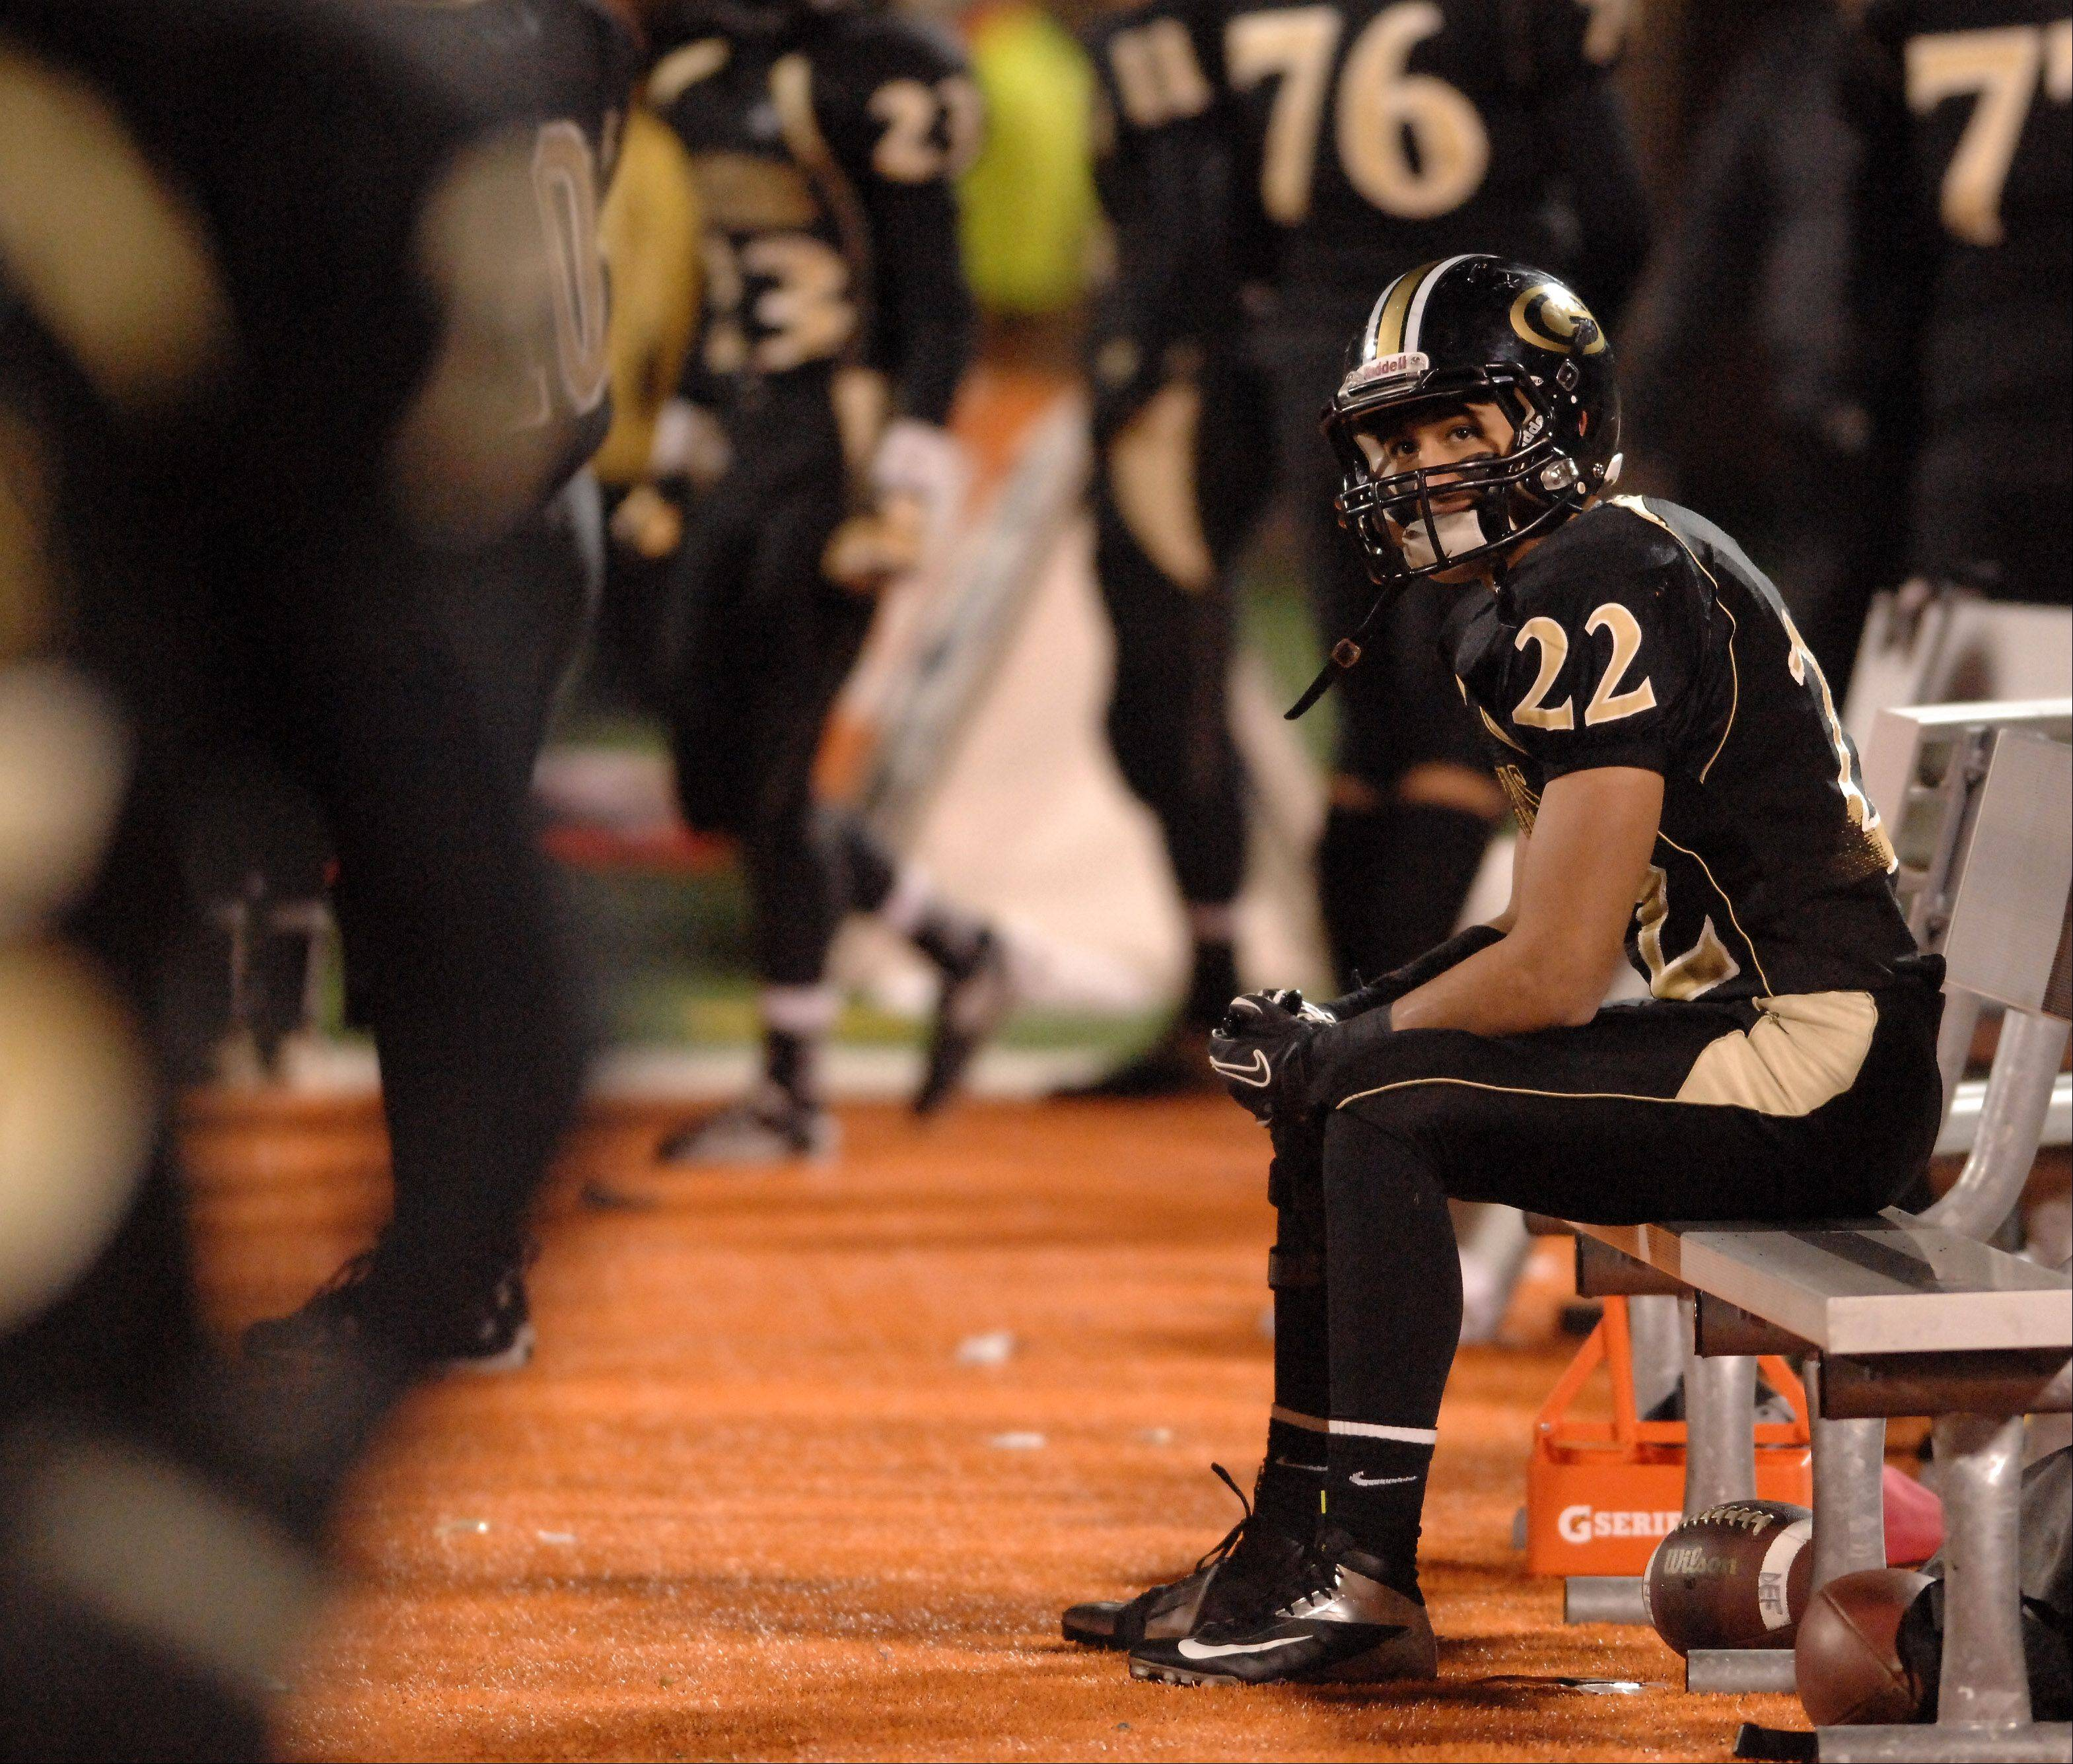 Glenbard North's Mario Rodriguez sits alone on the bench in the waning minutes of Saturday's Class 8A state title game at Memorial Stadium in Champaign.